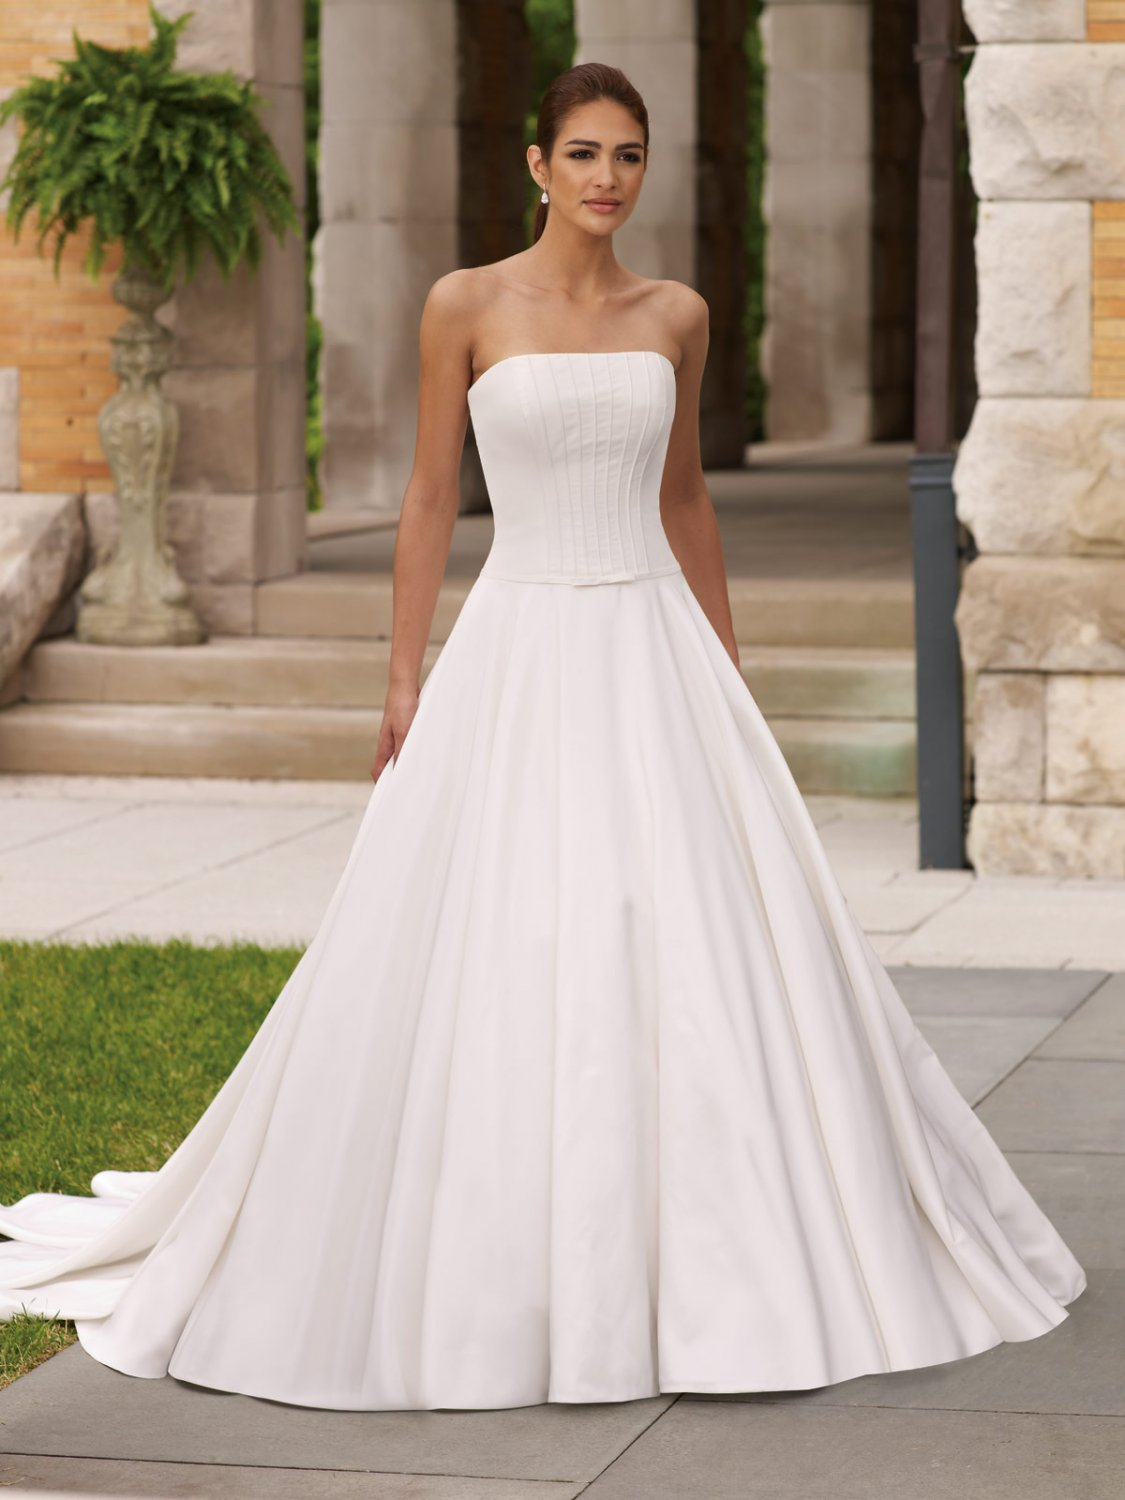 Simple elegant strapless wedding dresses